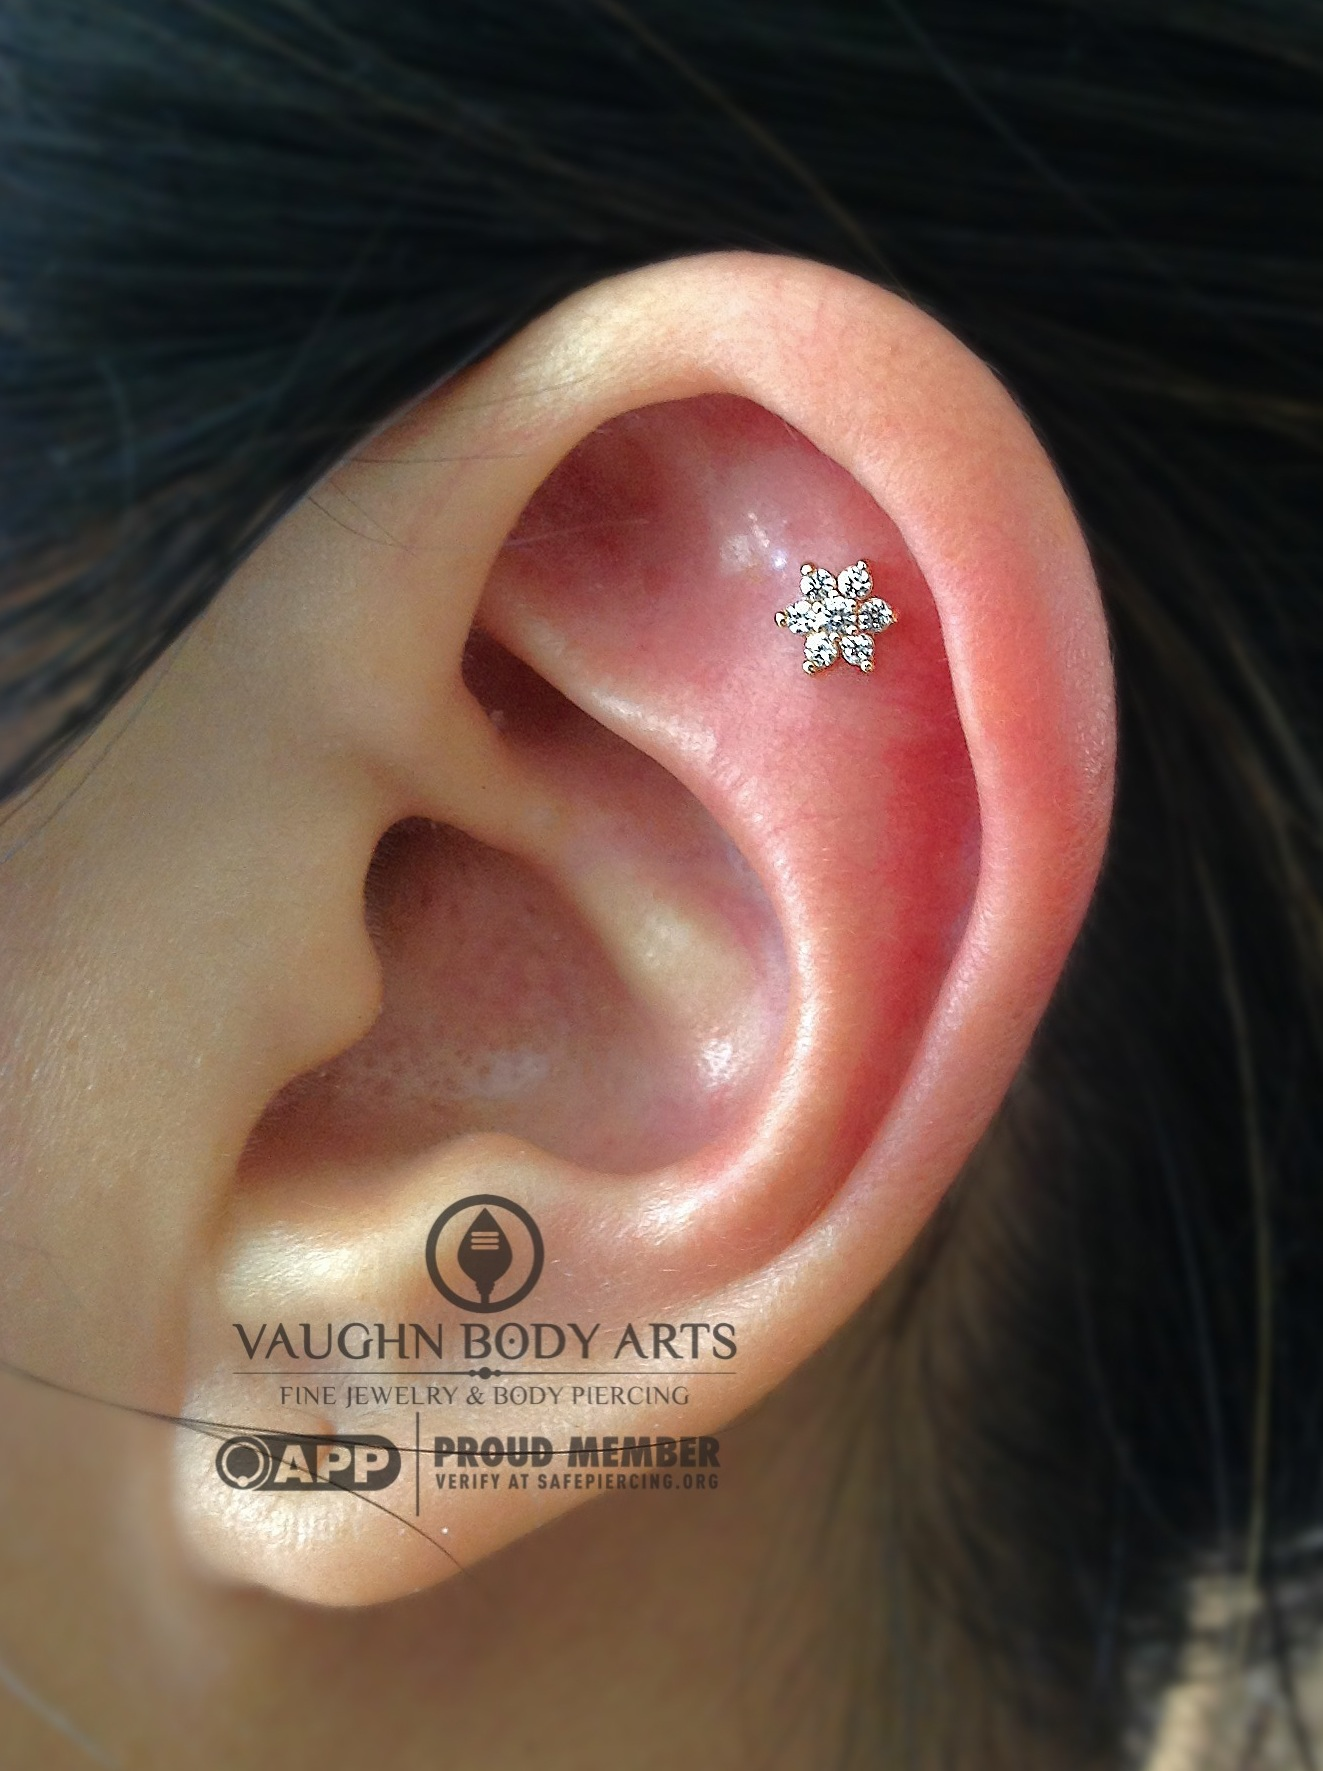 Helix piercing with a 14k yellow gold flower from NeoMetal.